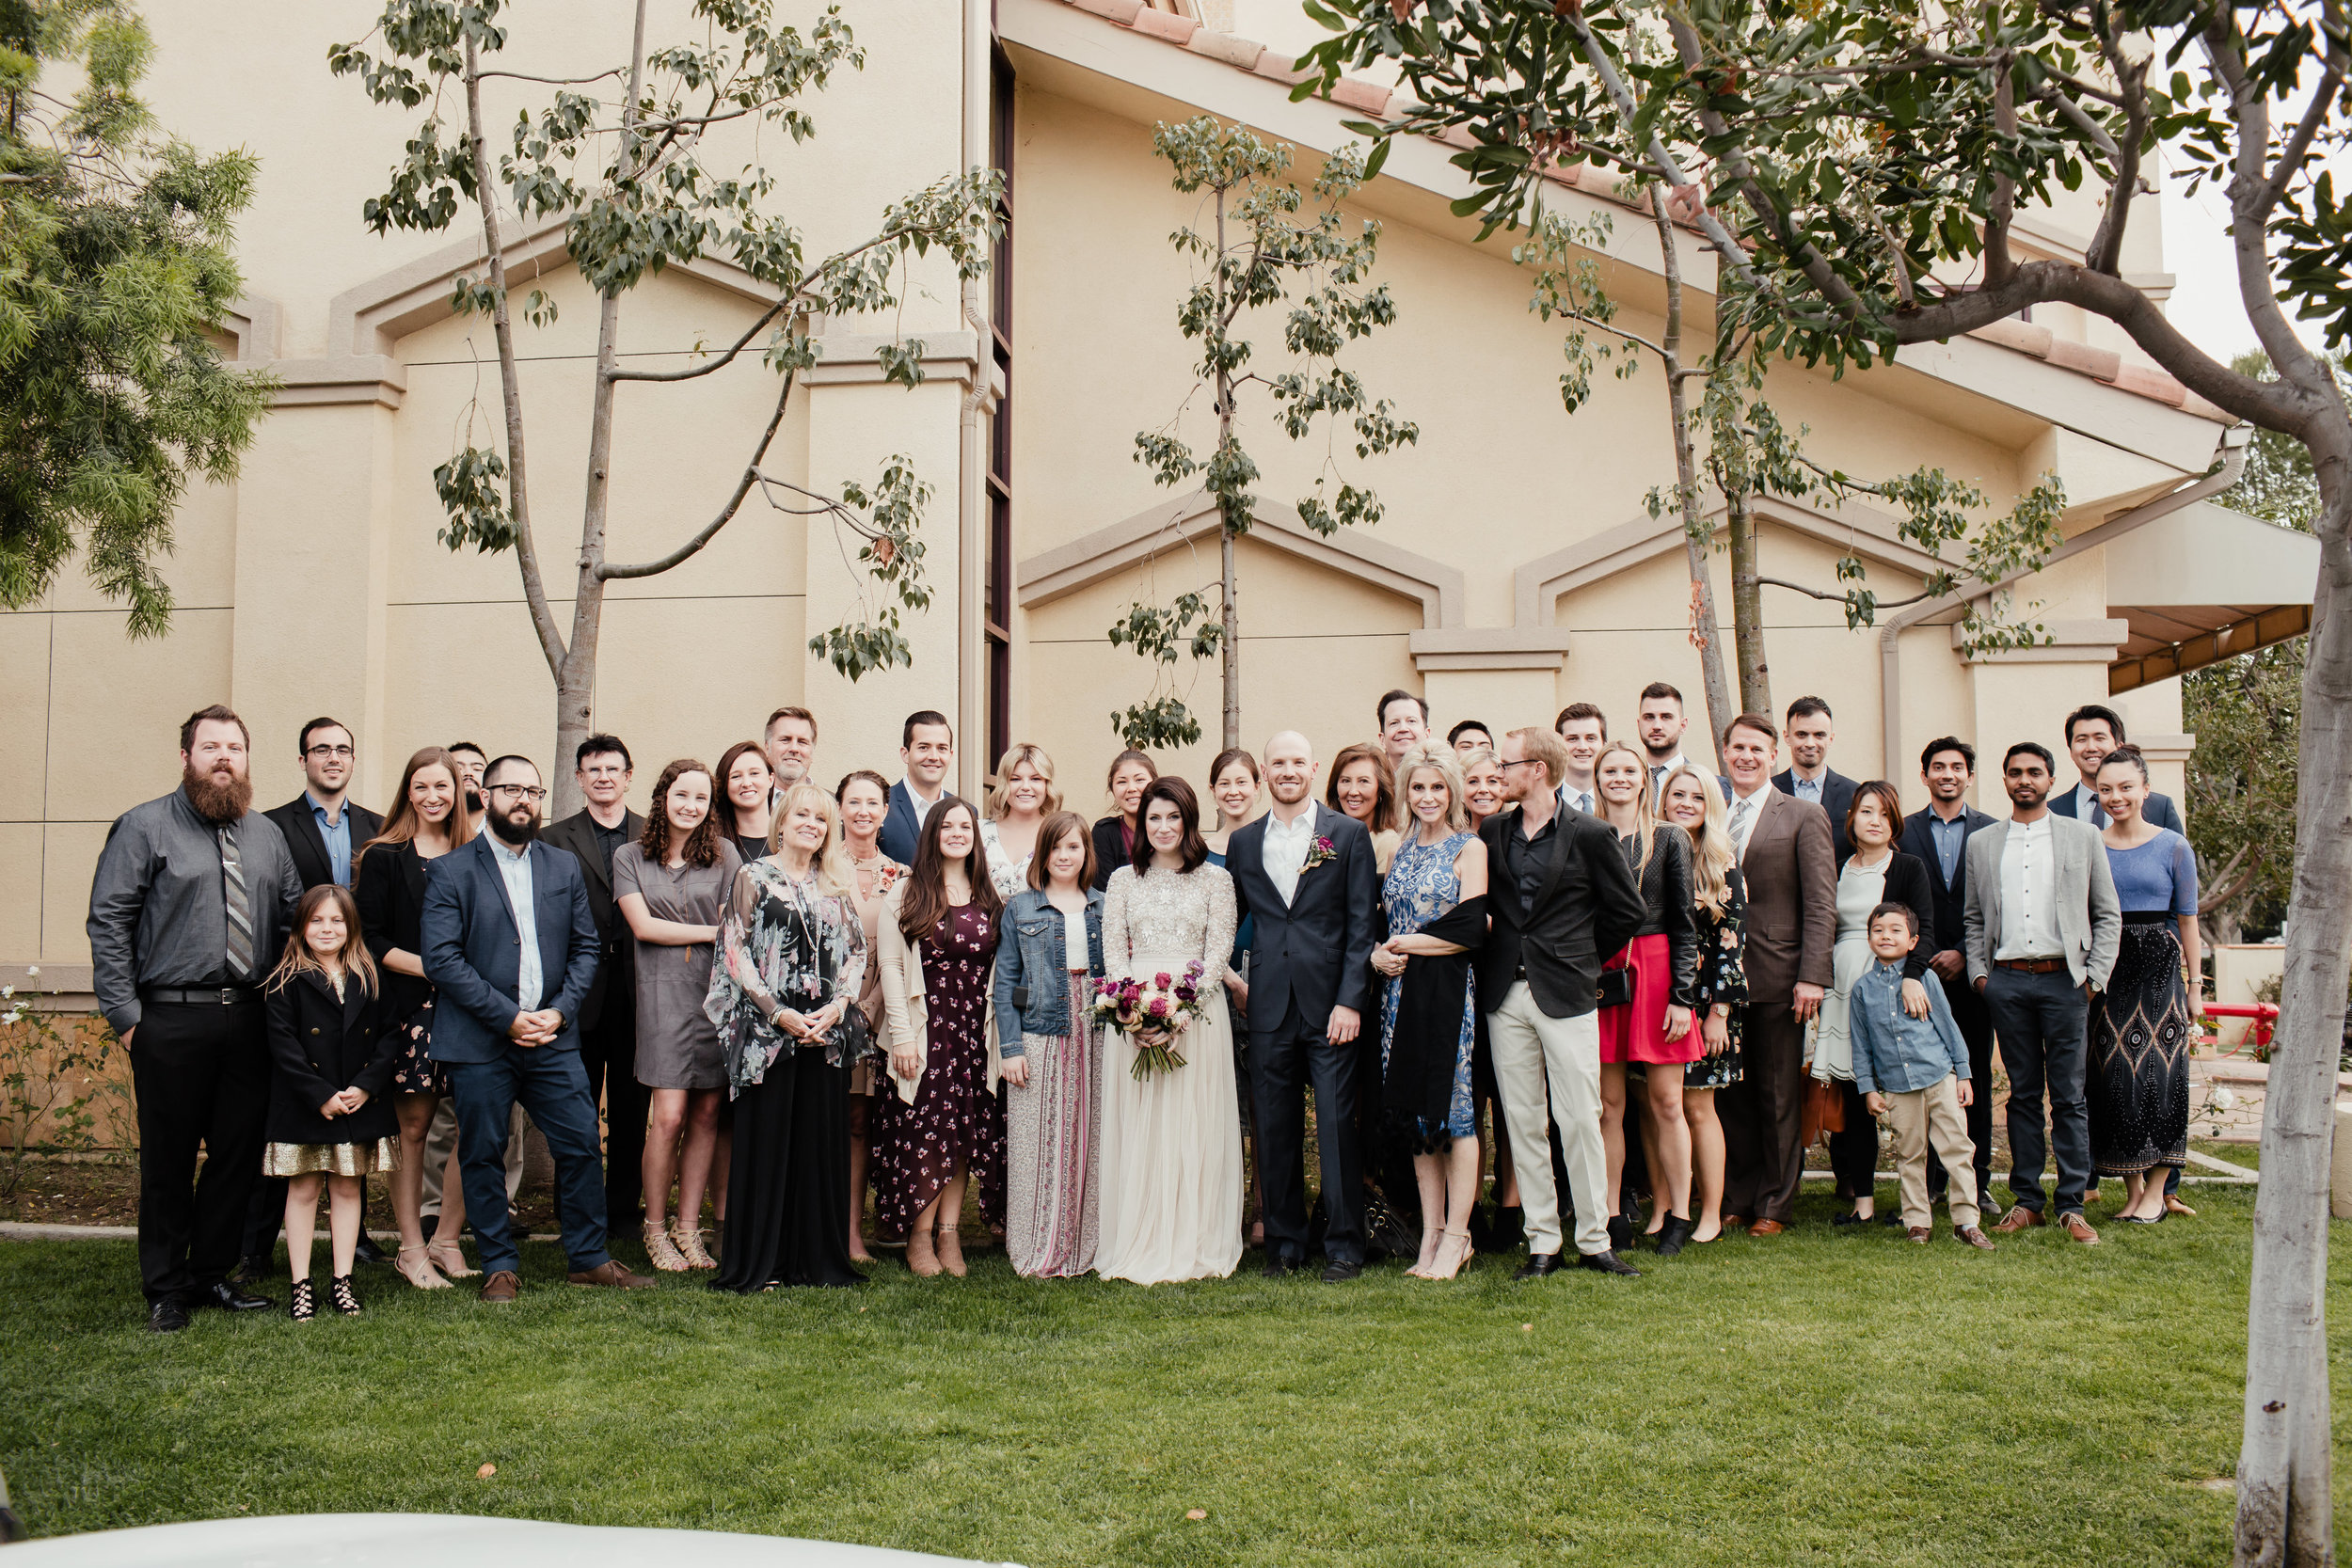 Caydin and Garrett Intimate wedding in Costa Mesa Orange County - Eve Rox Photography-337.jpg